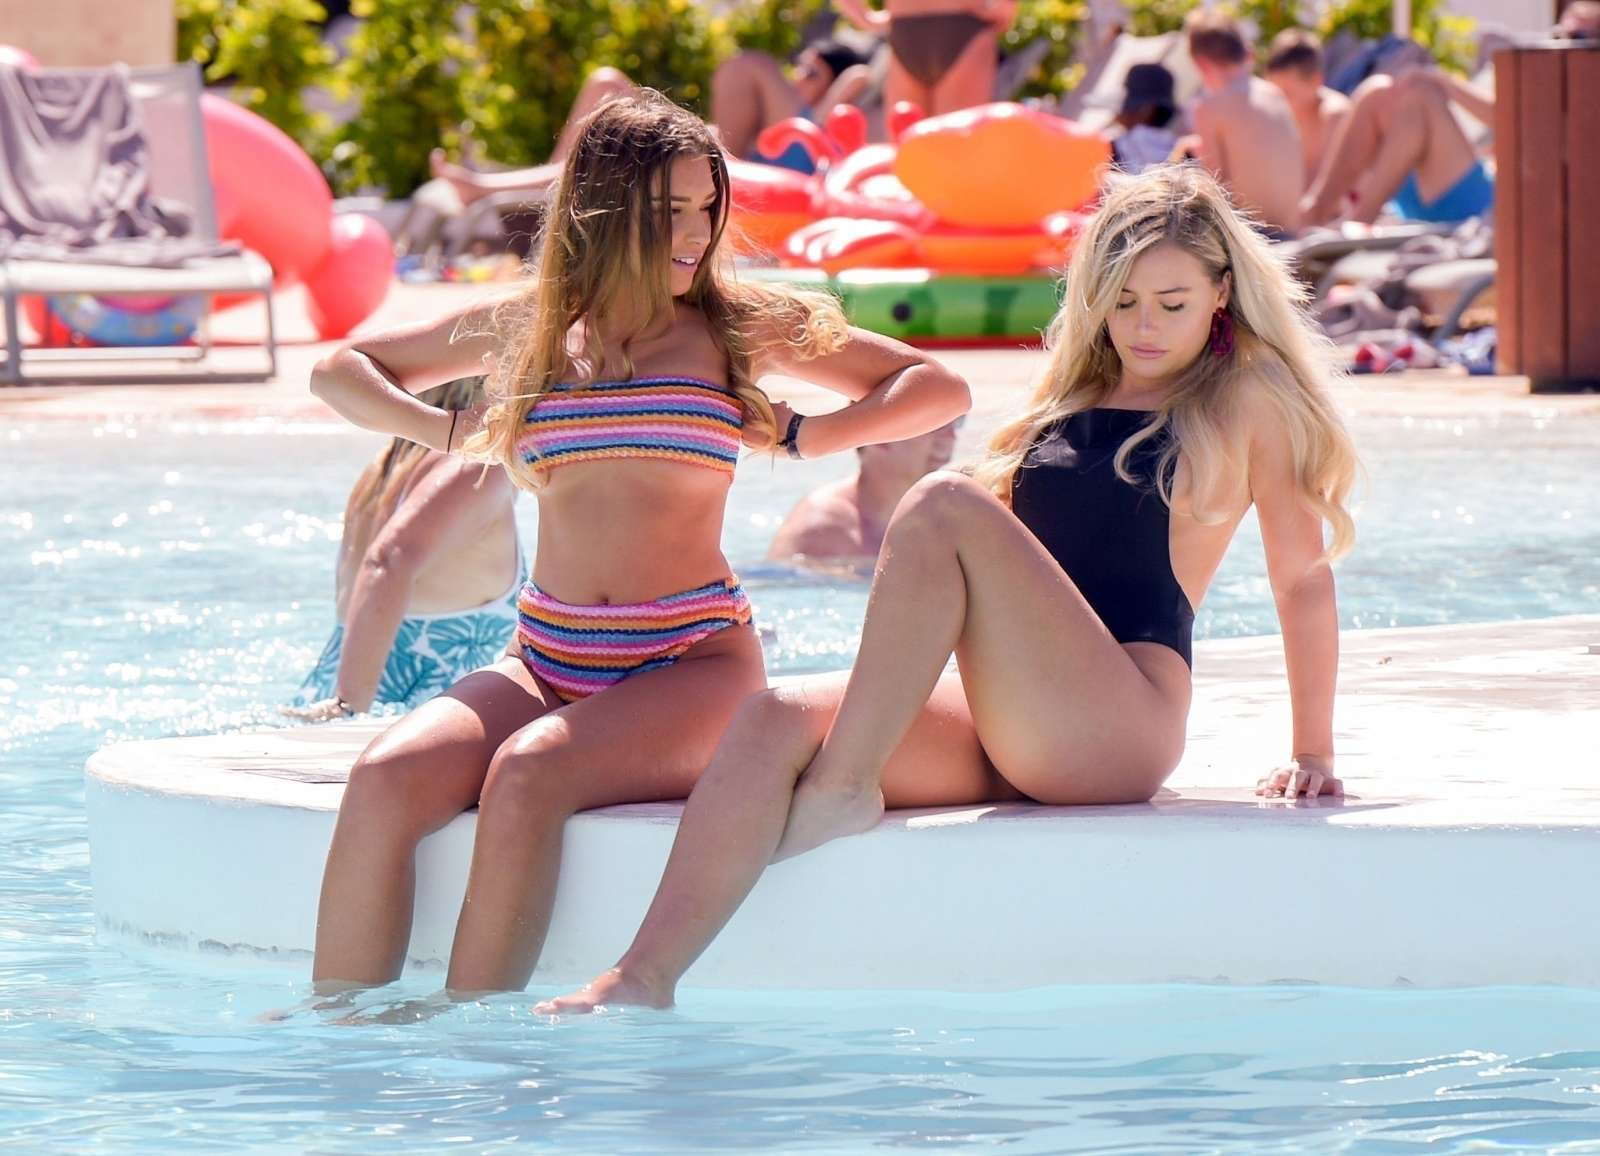 Zara McDermott and Ellie Brown in Bikini and Swimsuit at a Pool in Ibiza